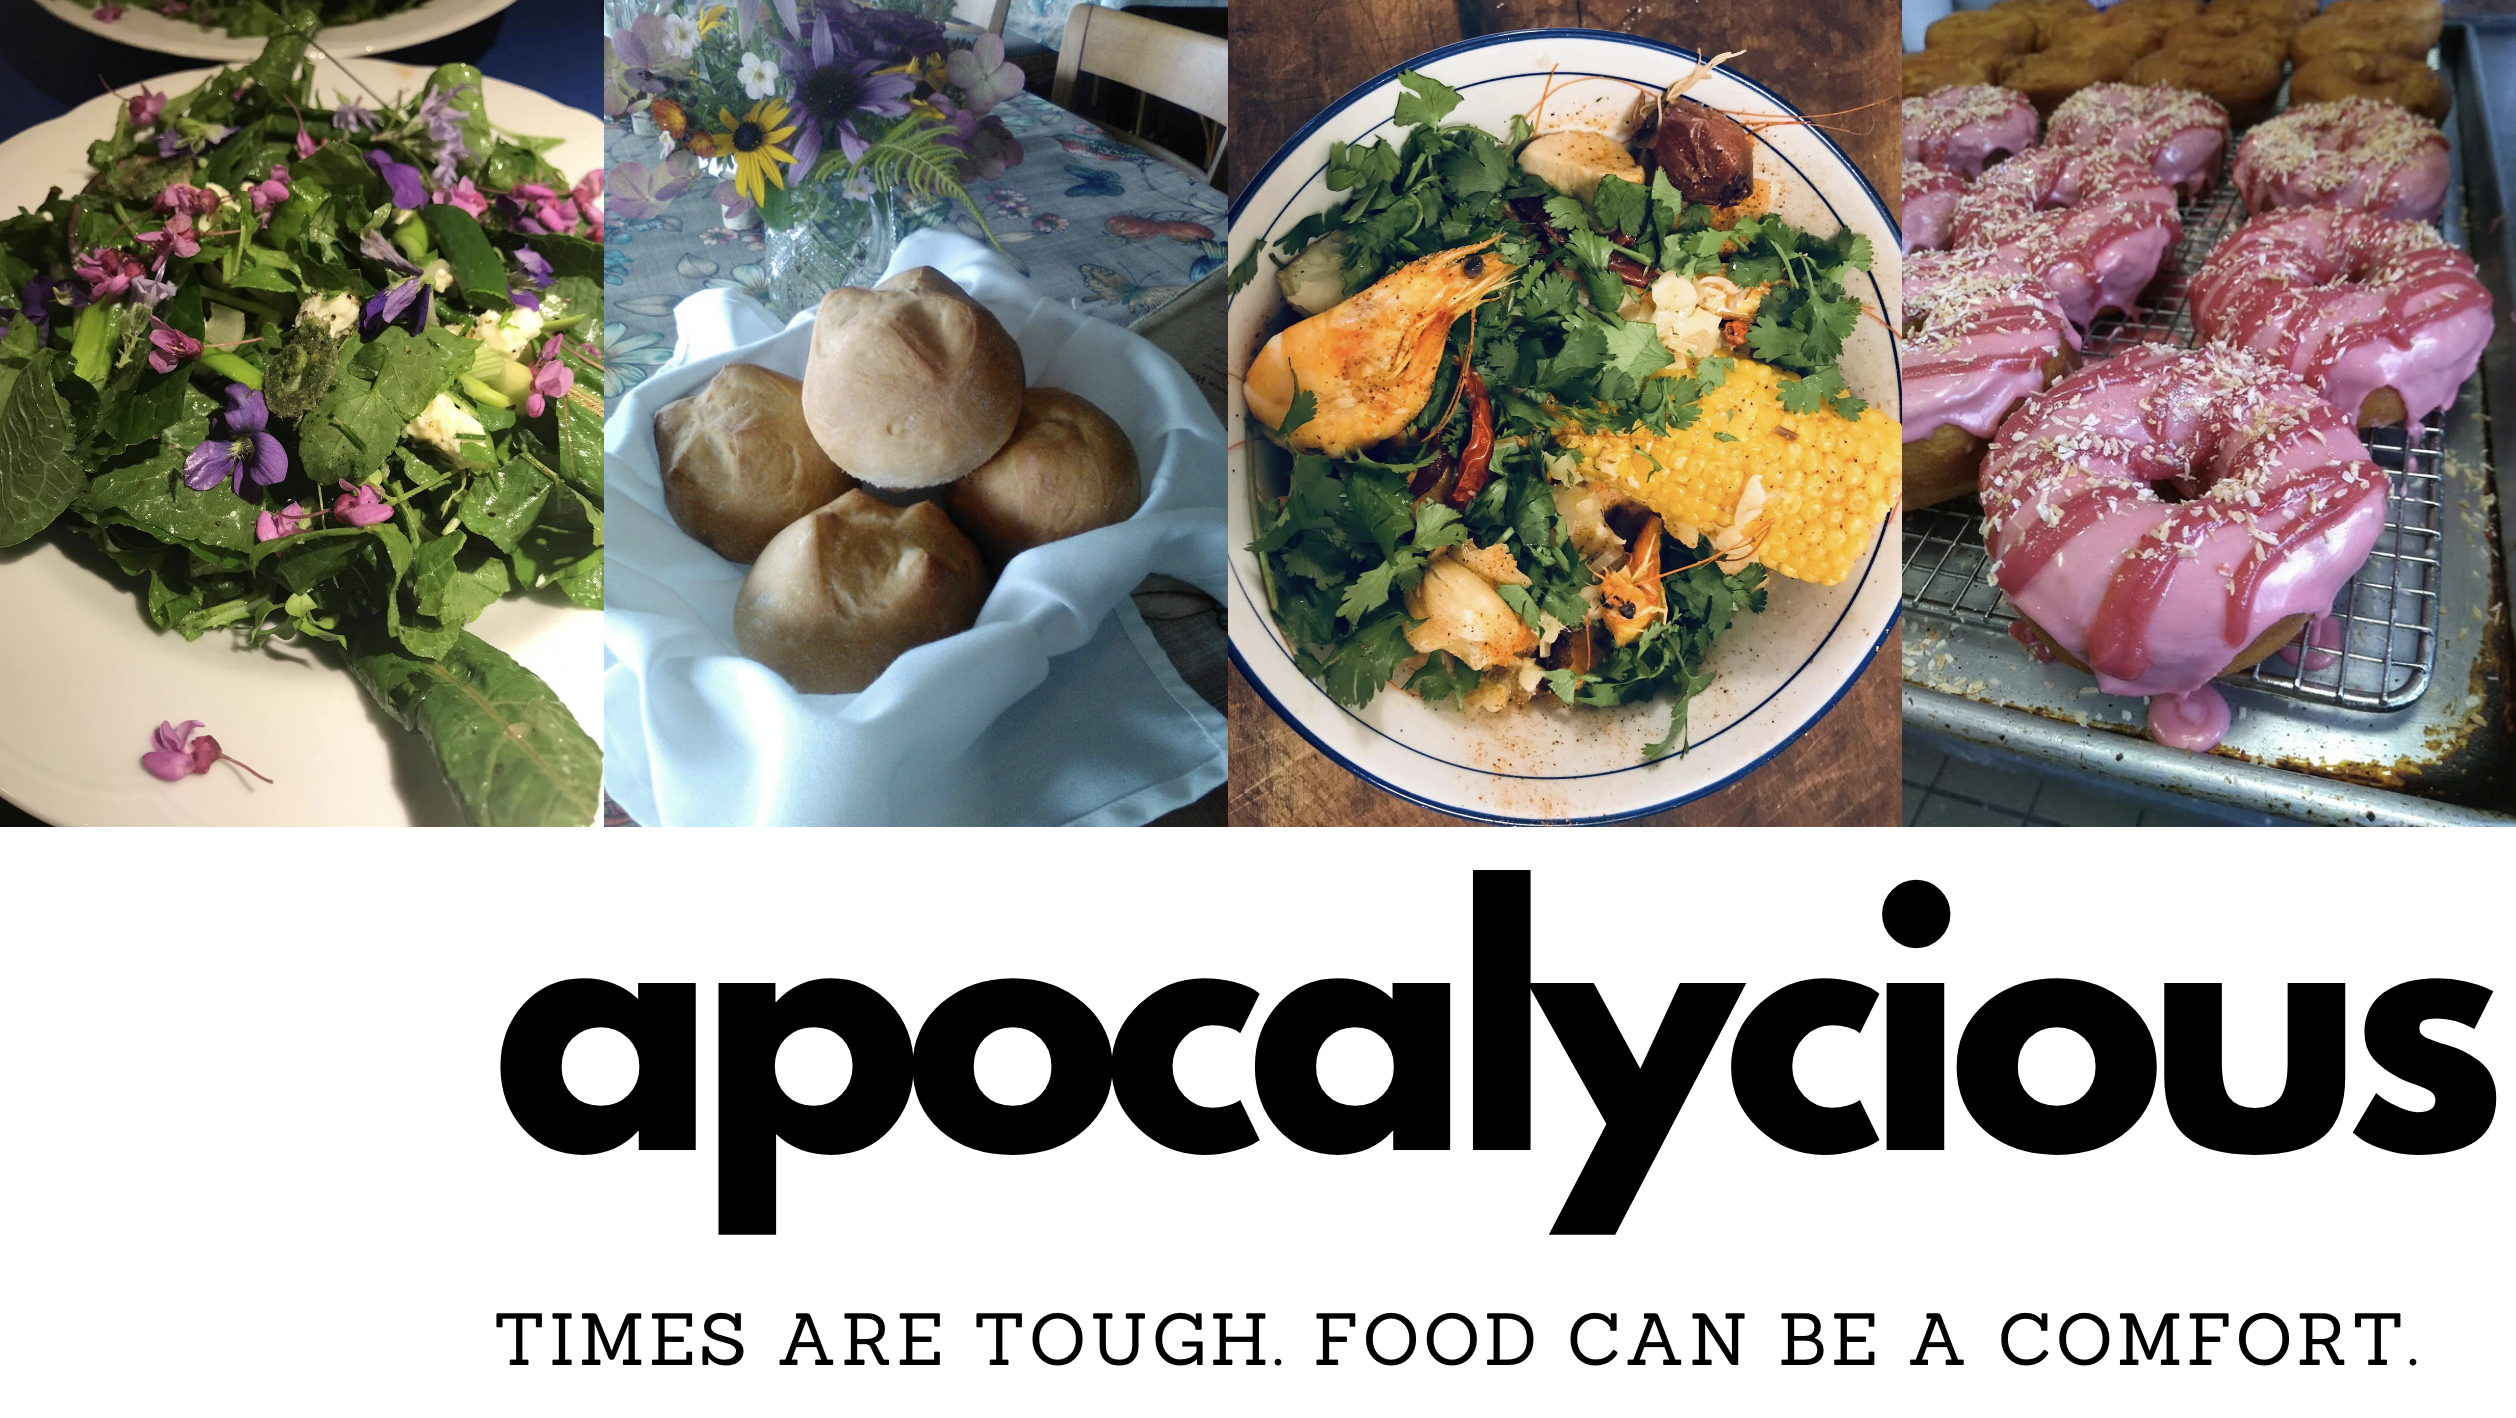 apocalycious: Times are Tough. Food Can Be a Comfort.